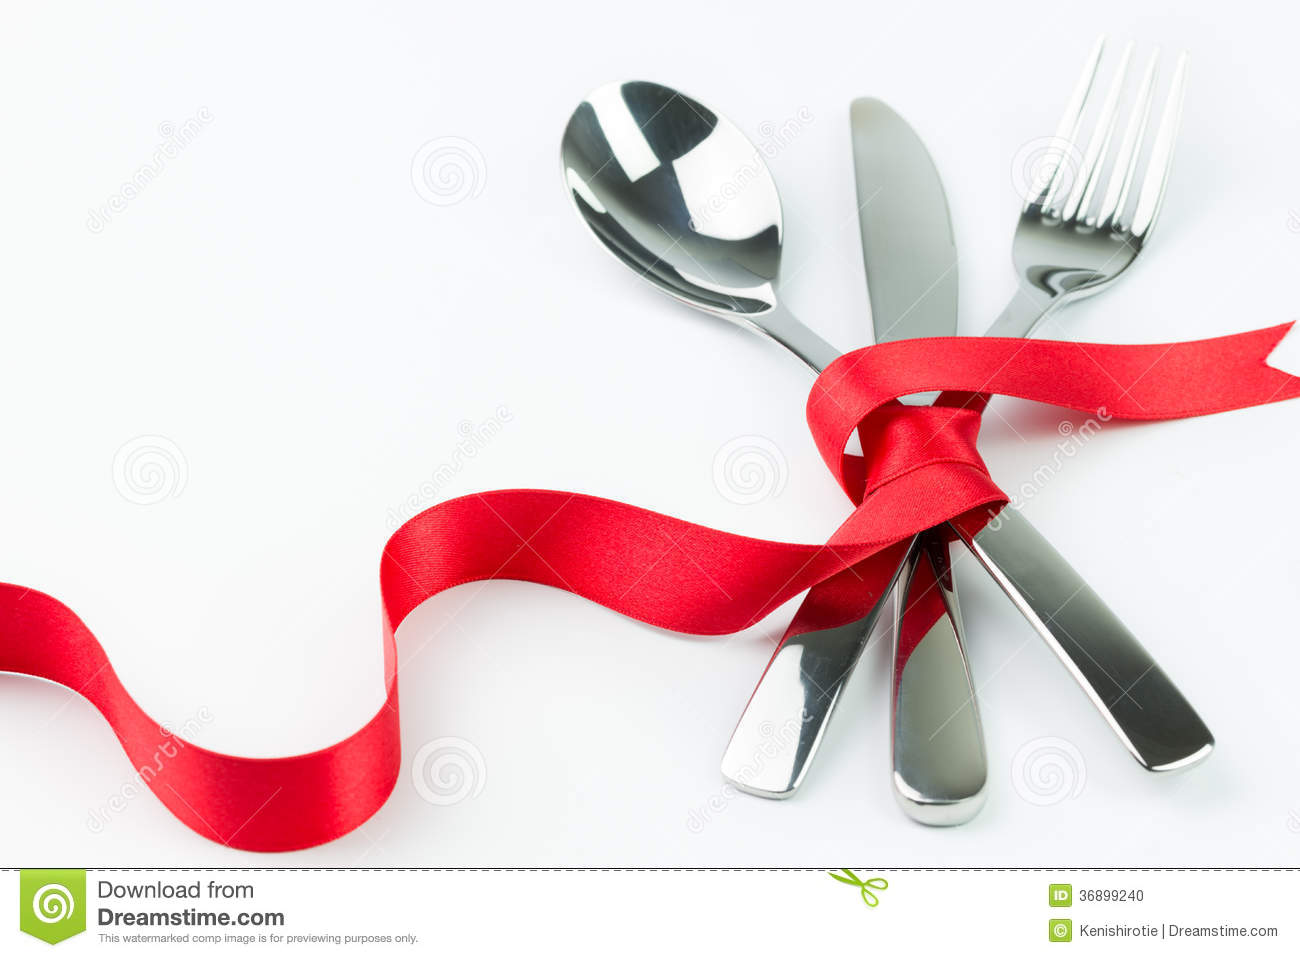 Fork Spoon And Knife Tied Up With Red Ribbon Stock Photo